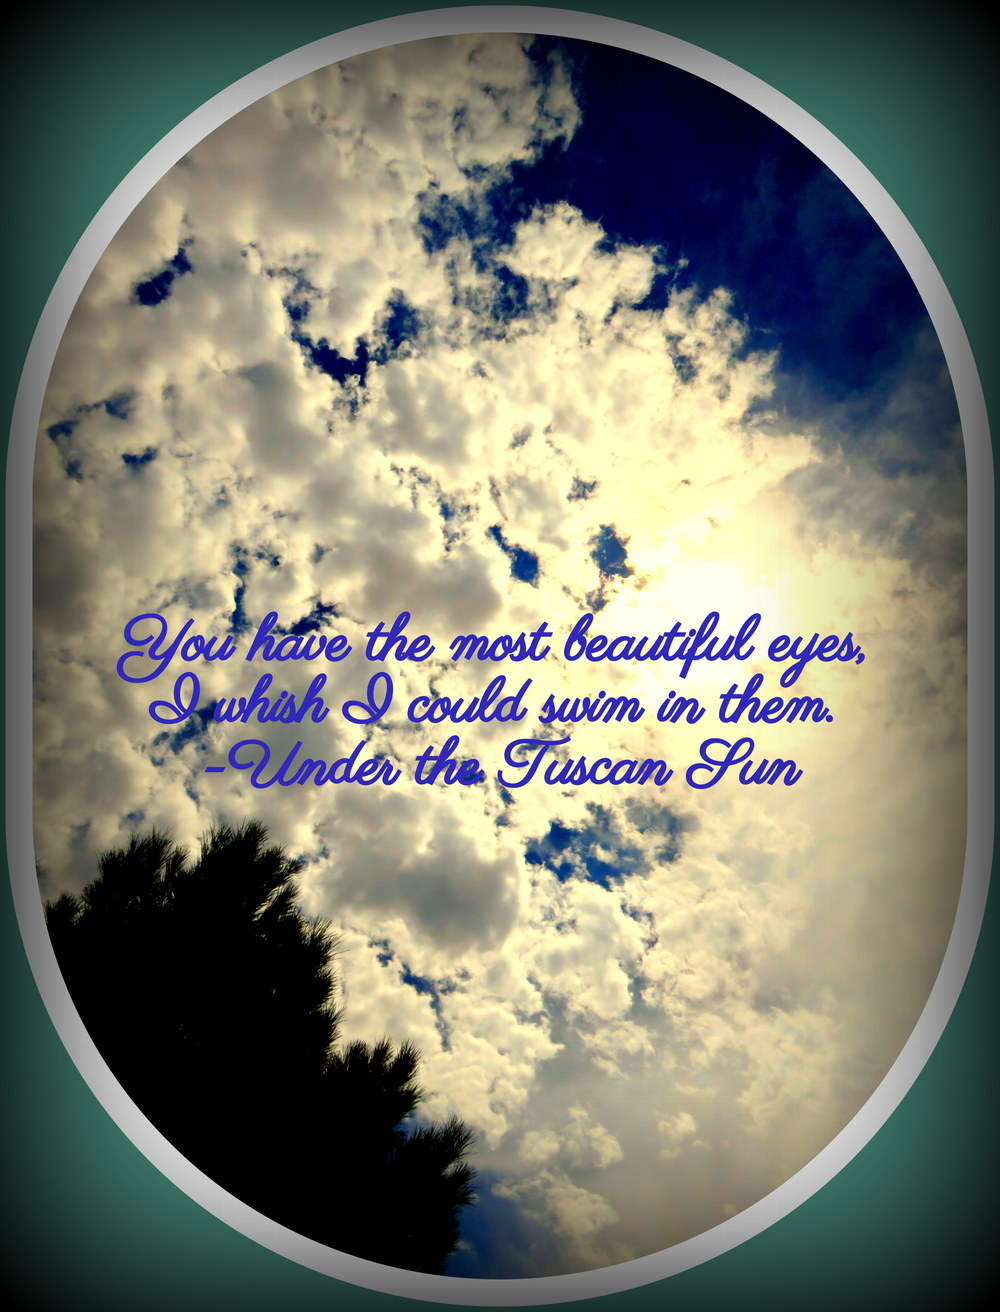 Quote from Under the Tuscan Sun